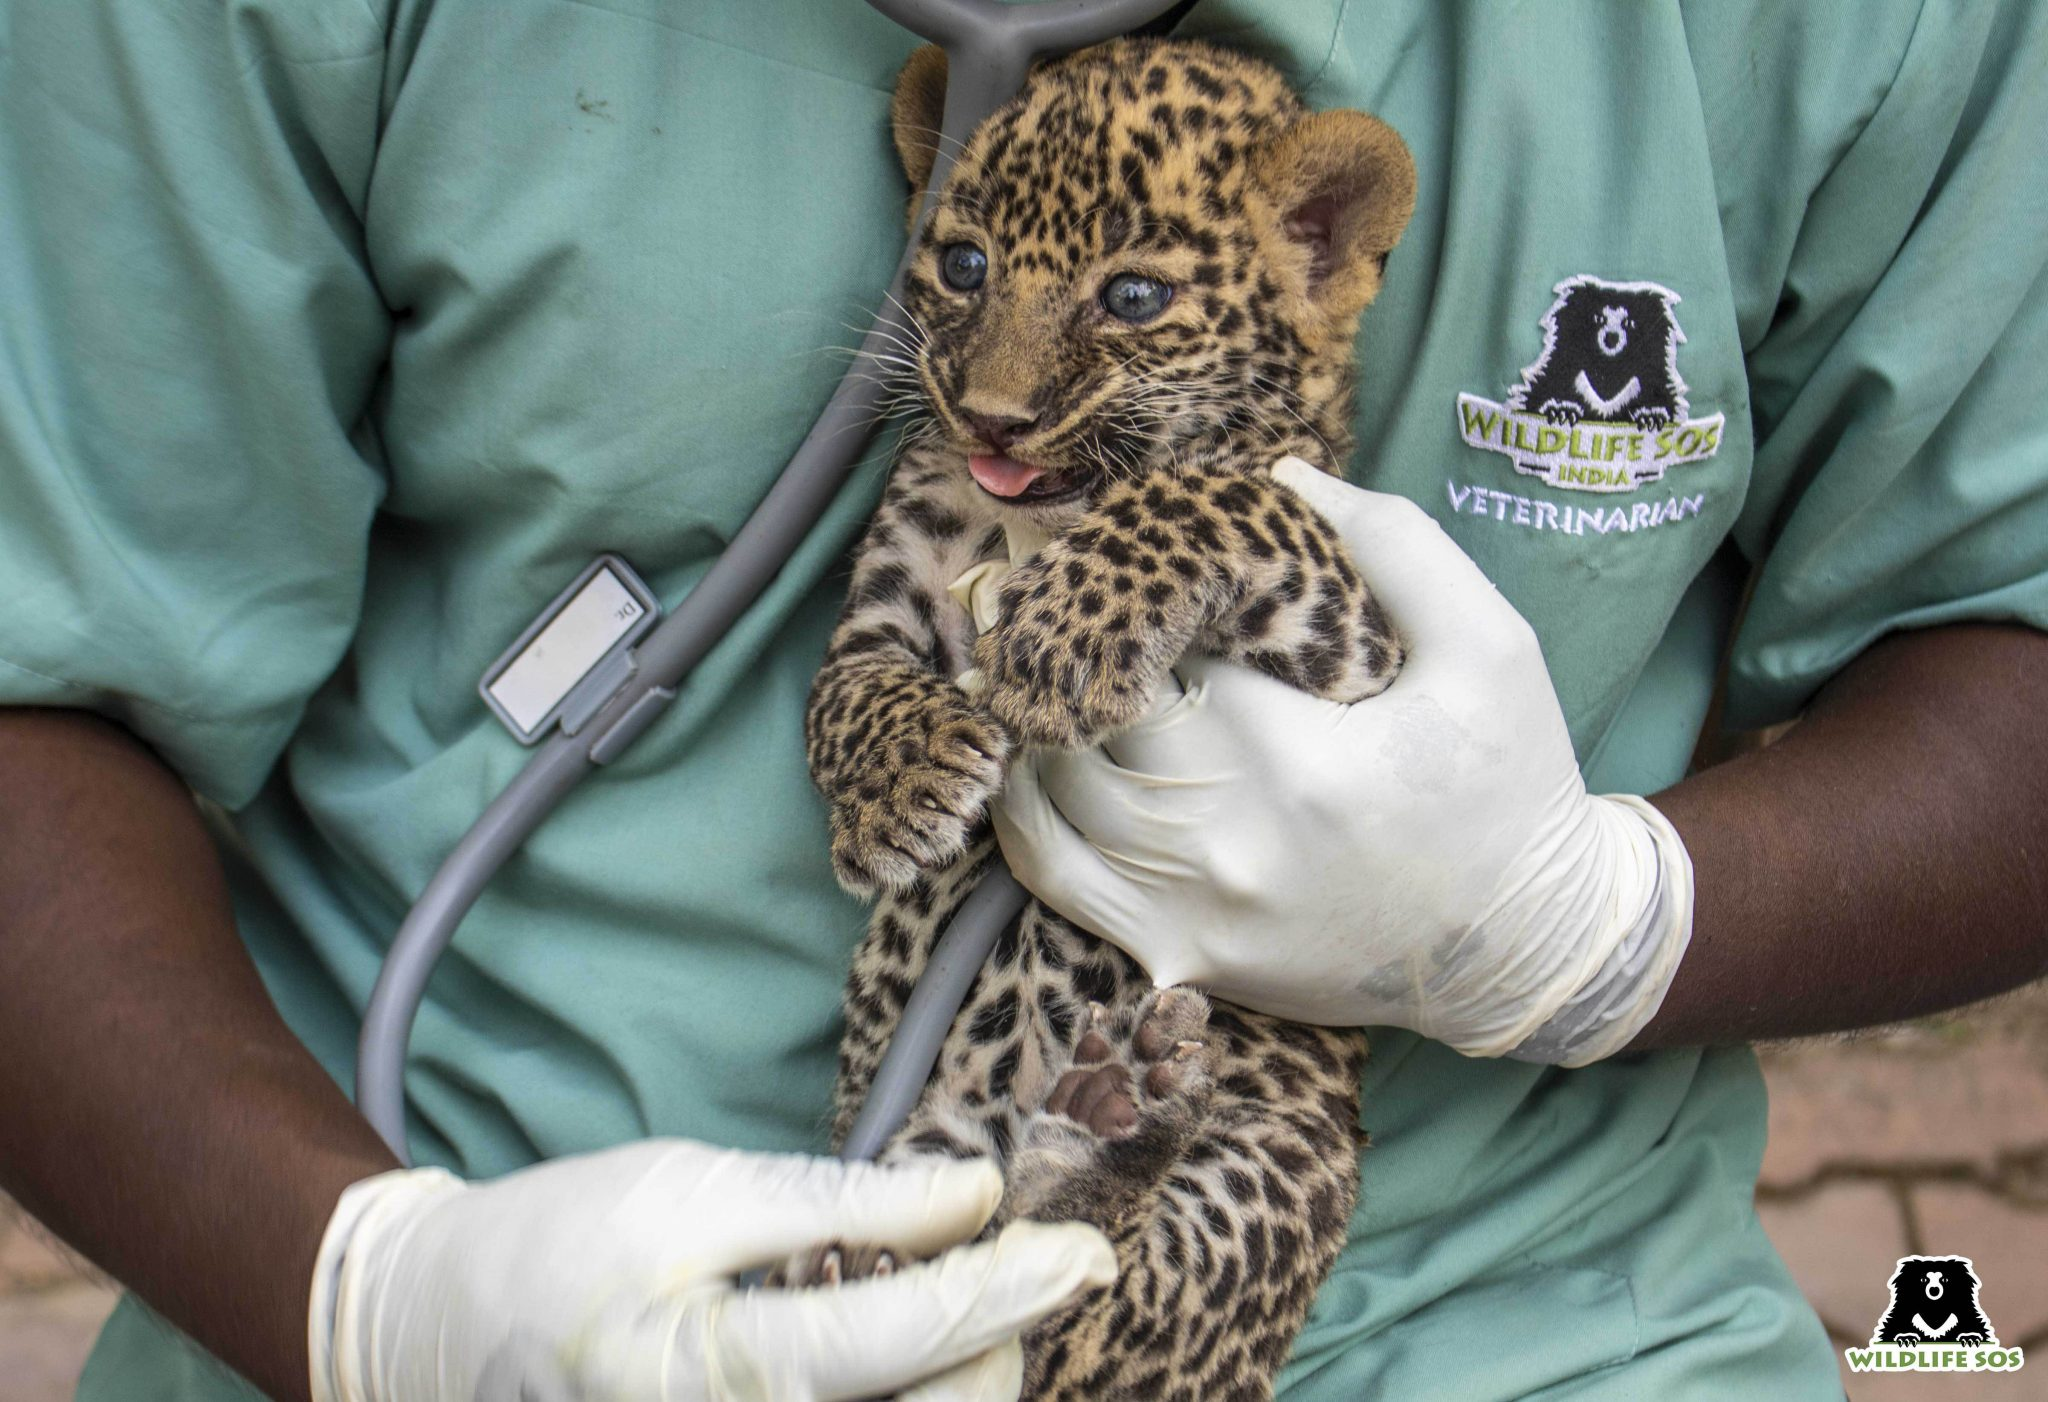 A leopard cub being examined by a Wildlife SOS vet. Image Courtesy of Wildlife SOS